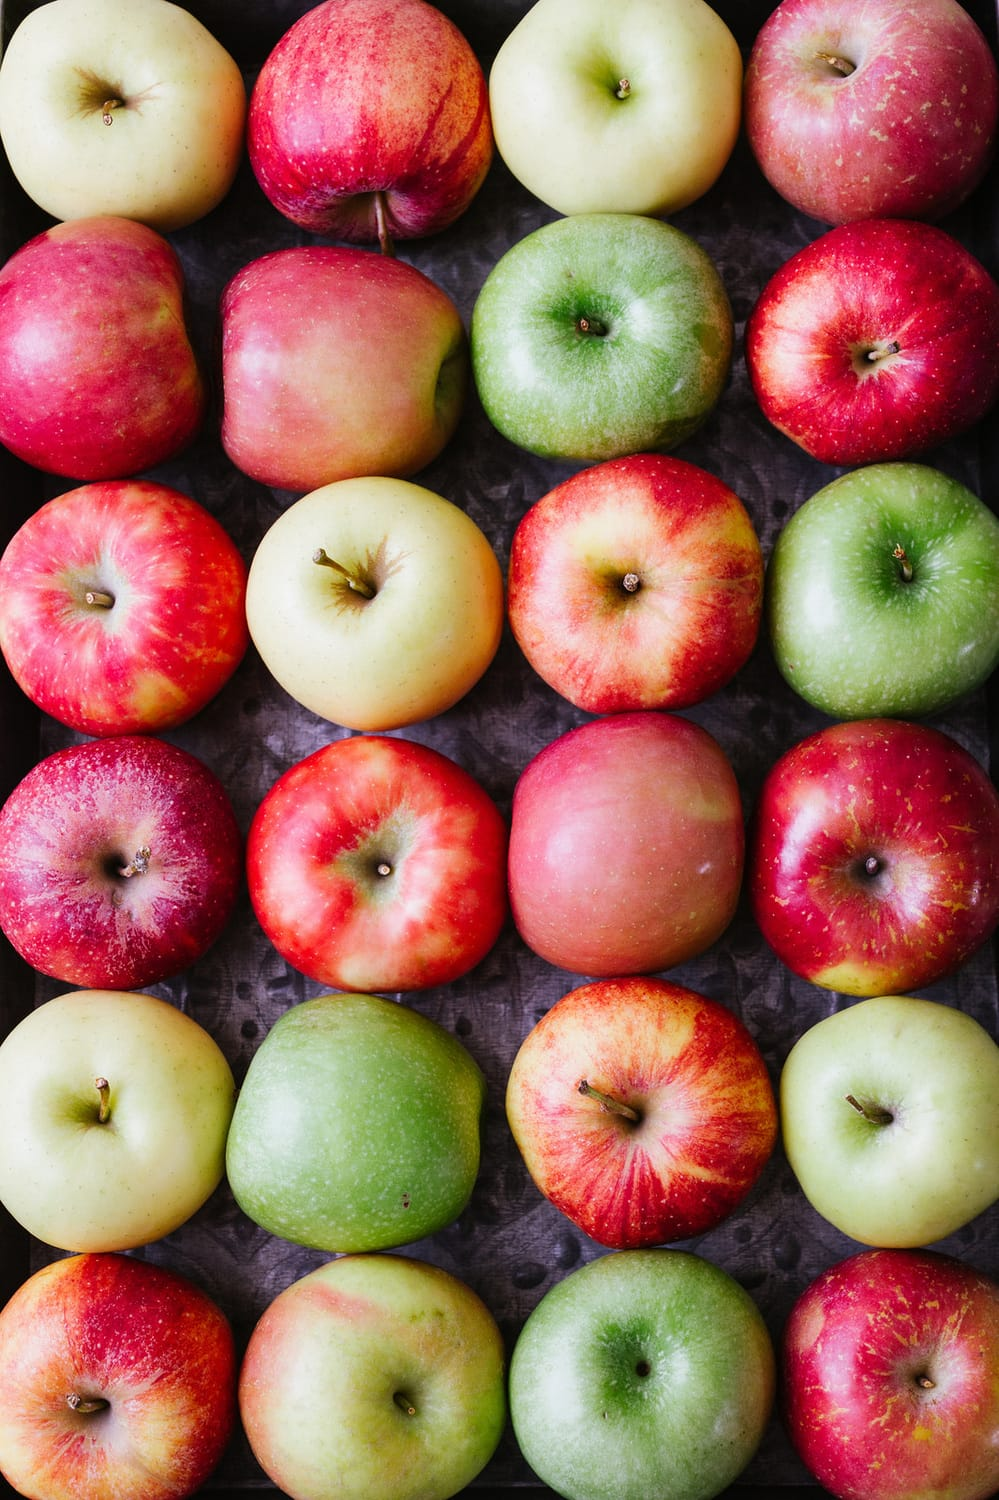 APPLESAUCE: choosing apples - fuji, honey crisp, golden delicious, gala, granny smith